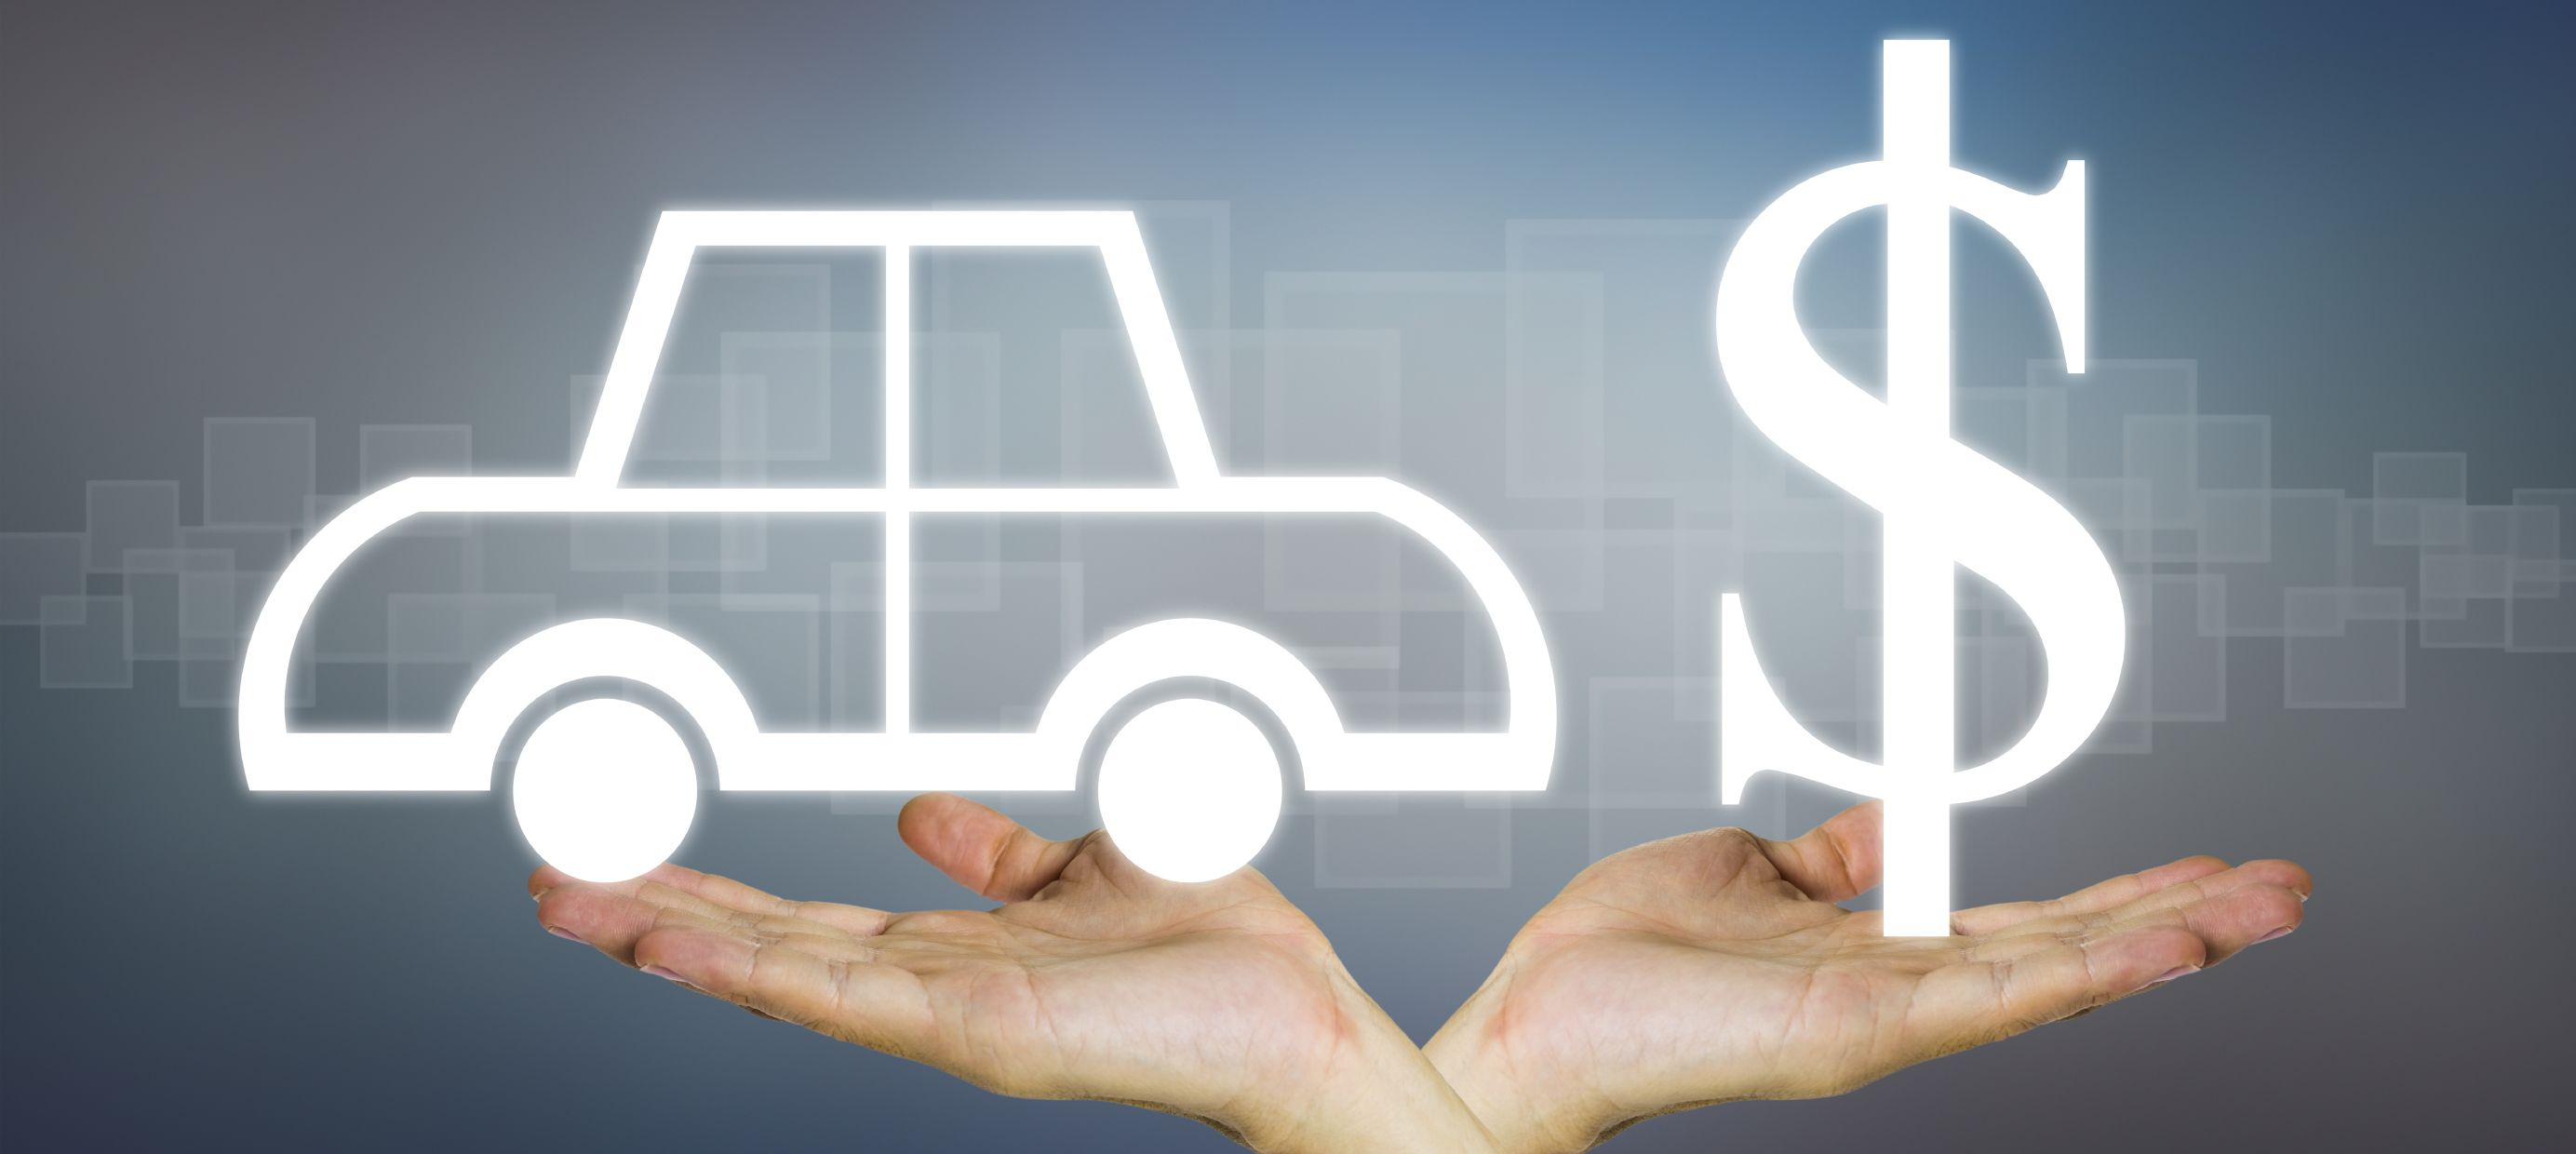 Top Dollar for Your Vehicle Trade In near Chantilly, VA